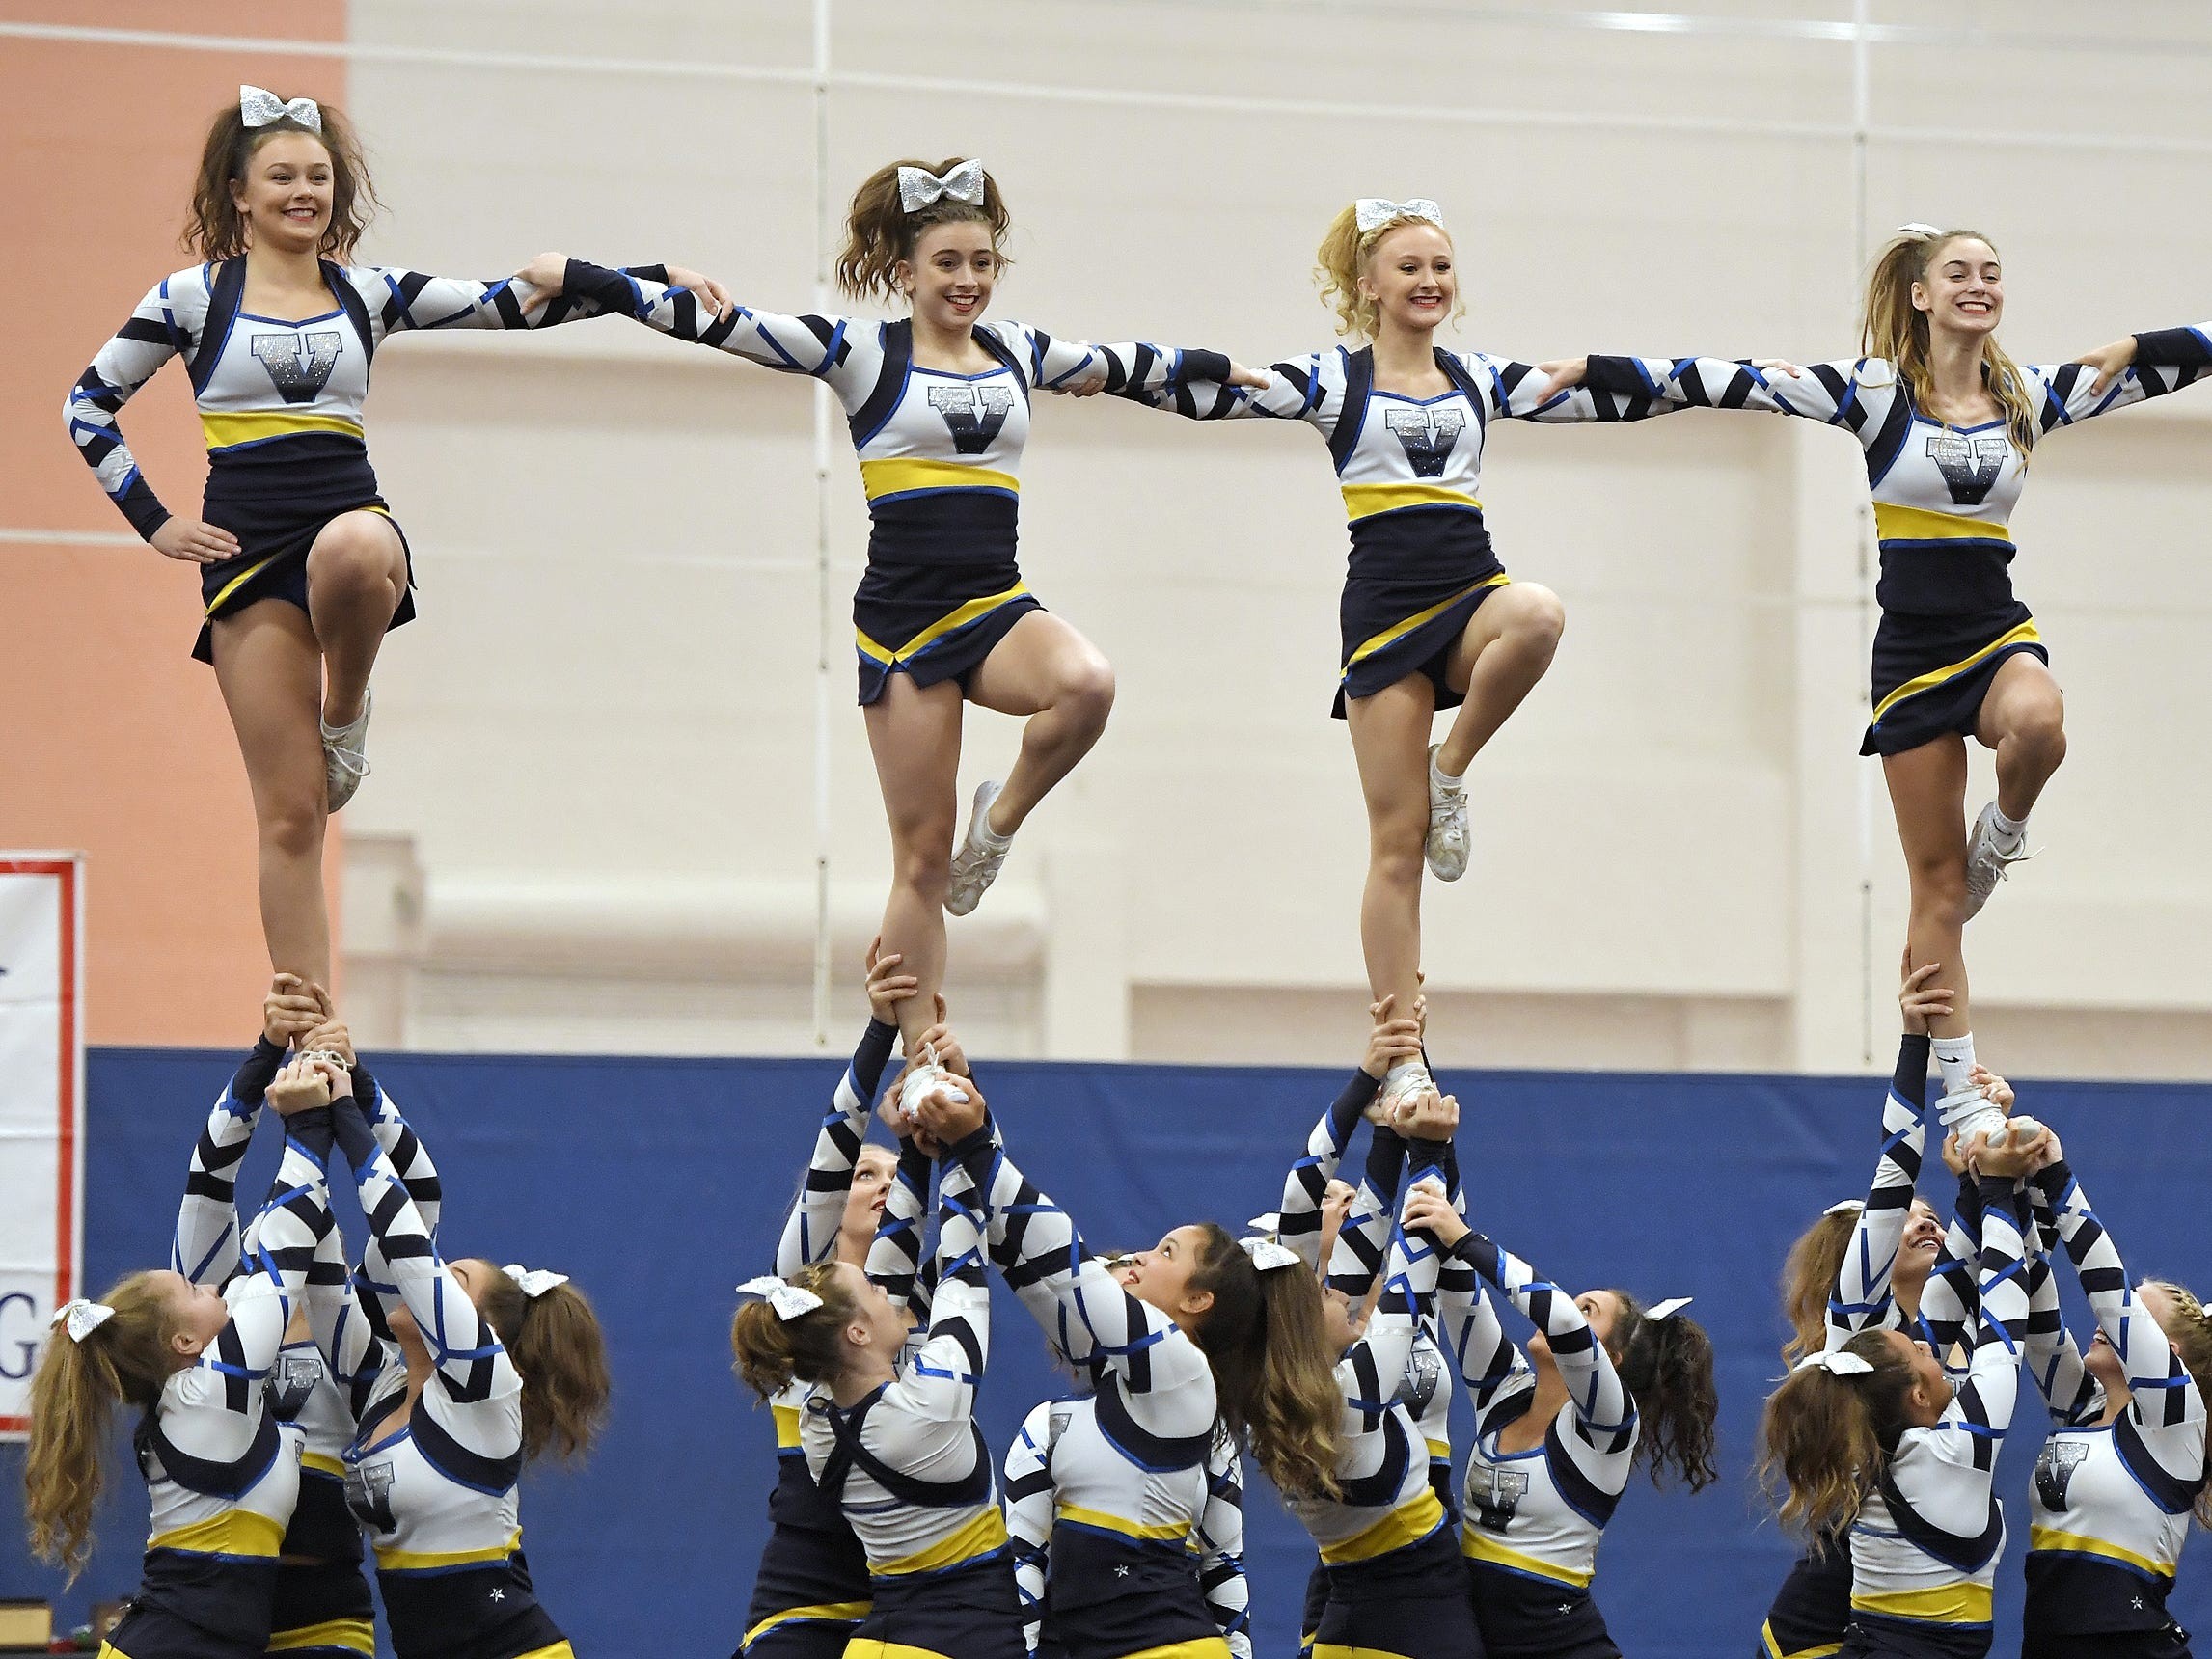 Victor cheerleaders perform their routine during the Section V Fall Cheerleading Championships at RIT, Saturday, Oct. 27, 2018.